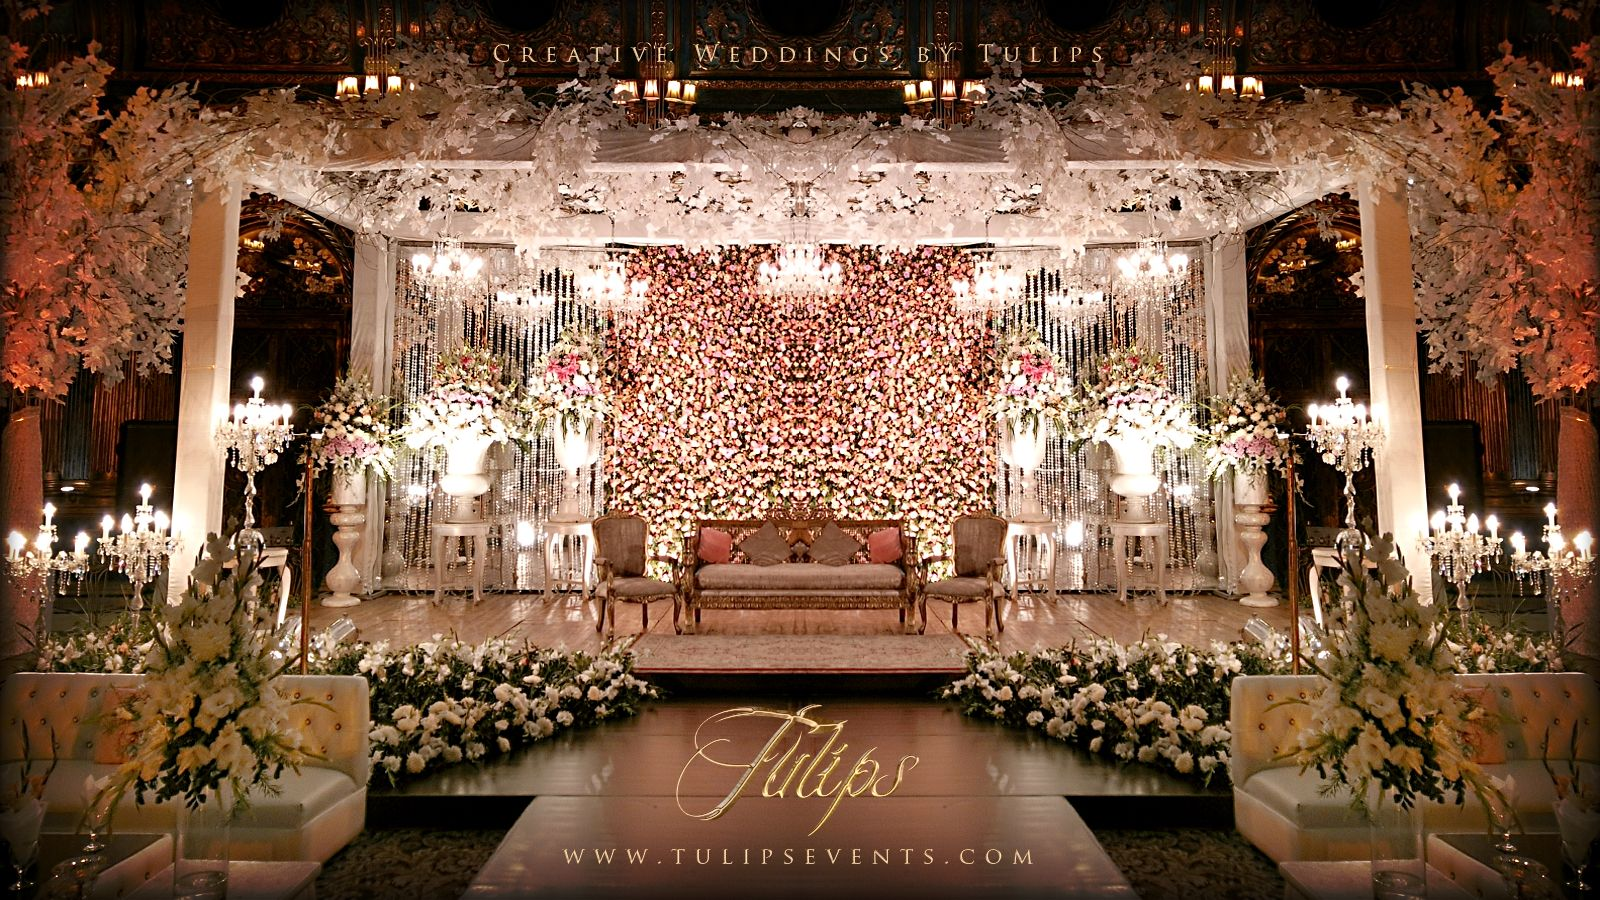 Tulips event best pakistani wedding stage decoration flowering for tulips event best pakistani wedding stage decoration flowering for mehndi walima barat stages dcor services junglespirit Image collections